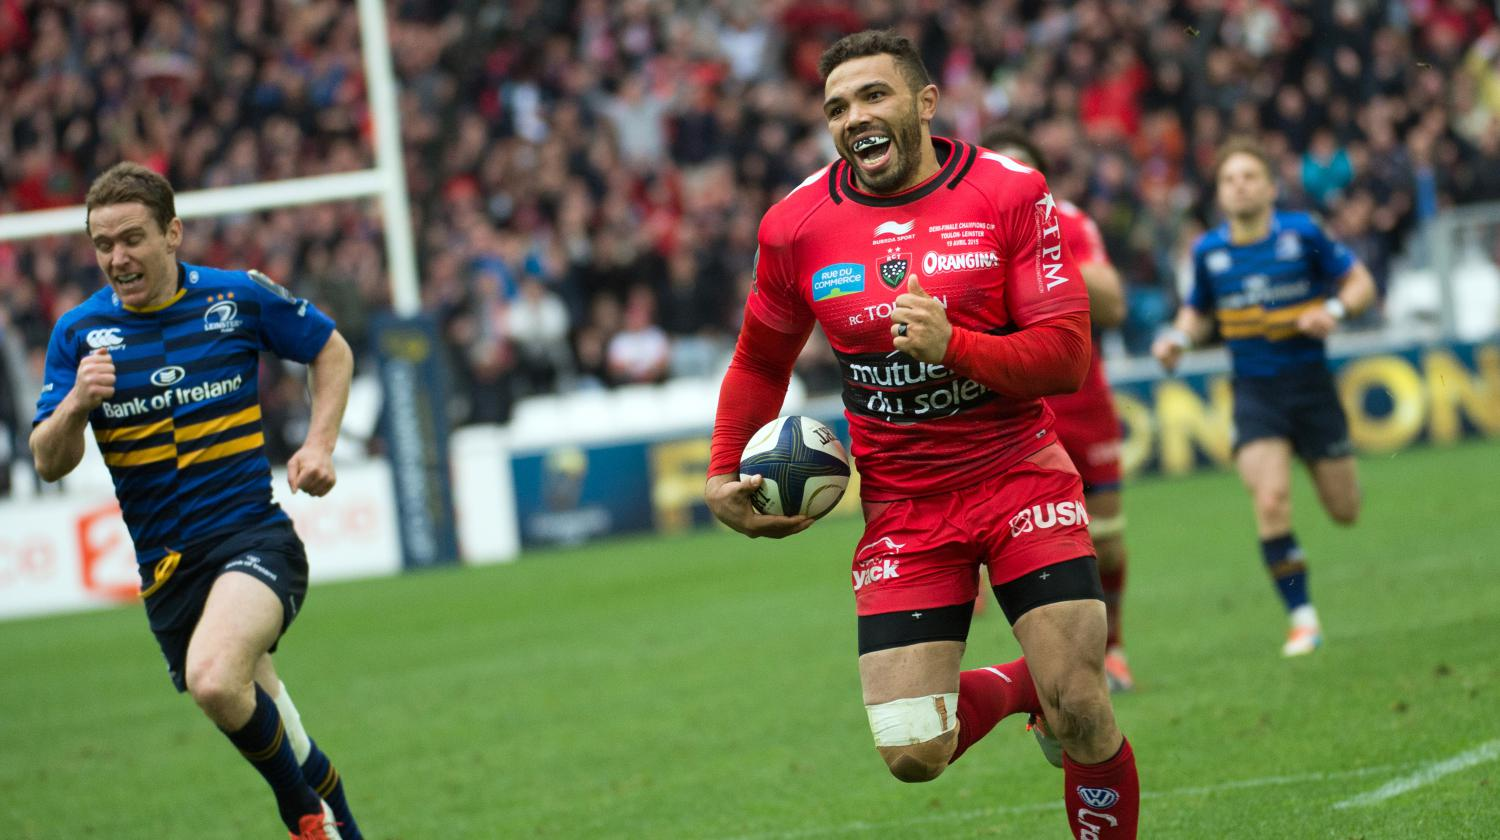 Coupe d 39 europe de rugby toulon bat le leinster 25 20 et retrouve clermont en finale - Rugby toulon coupe d europe ...